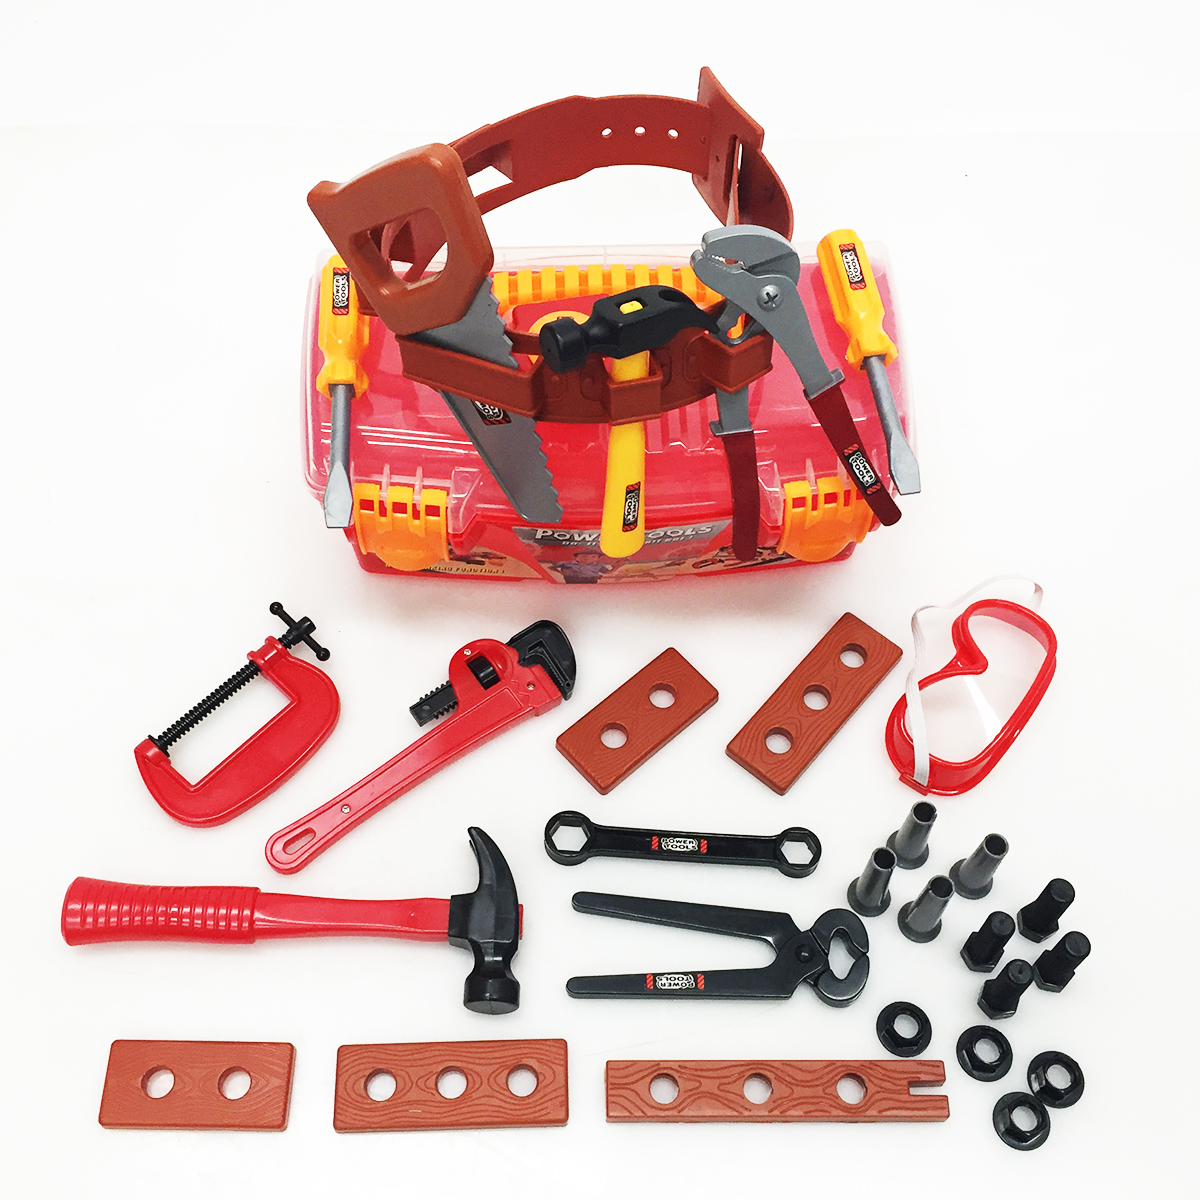 Construction Toys For Boys : Power tools for kids construction toys boys toddlers